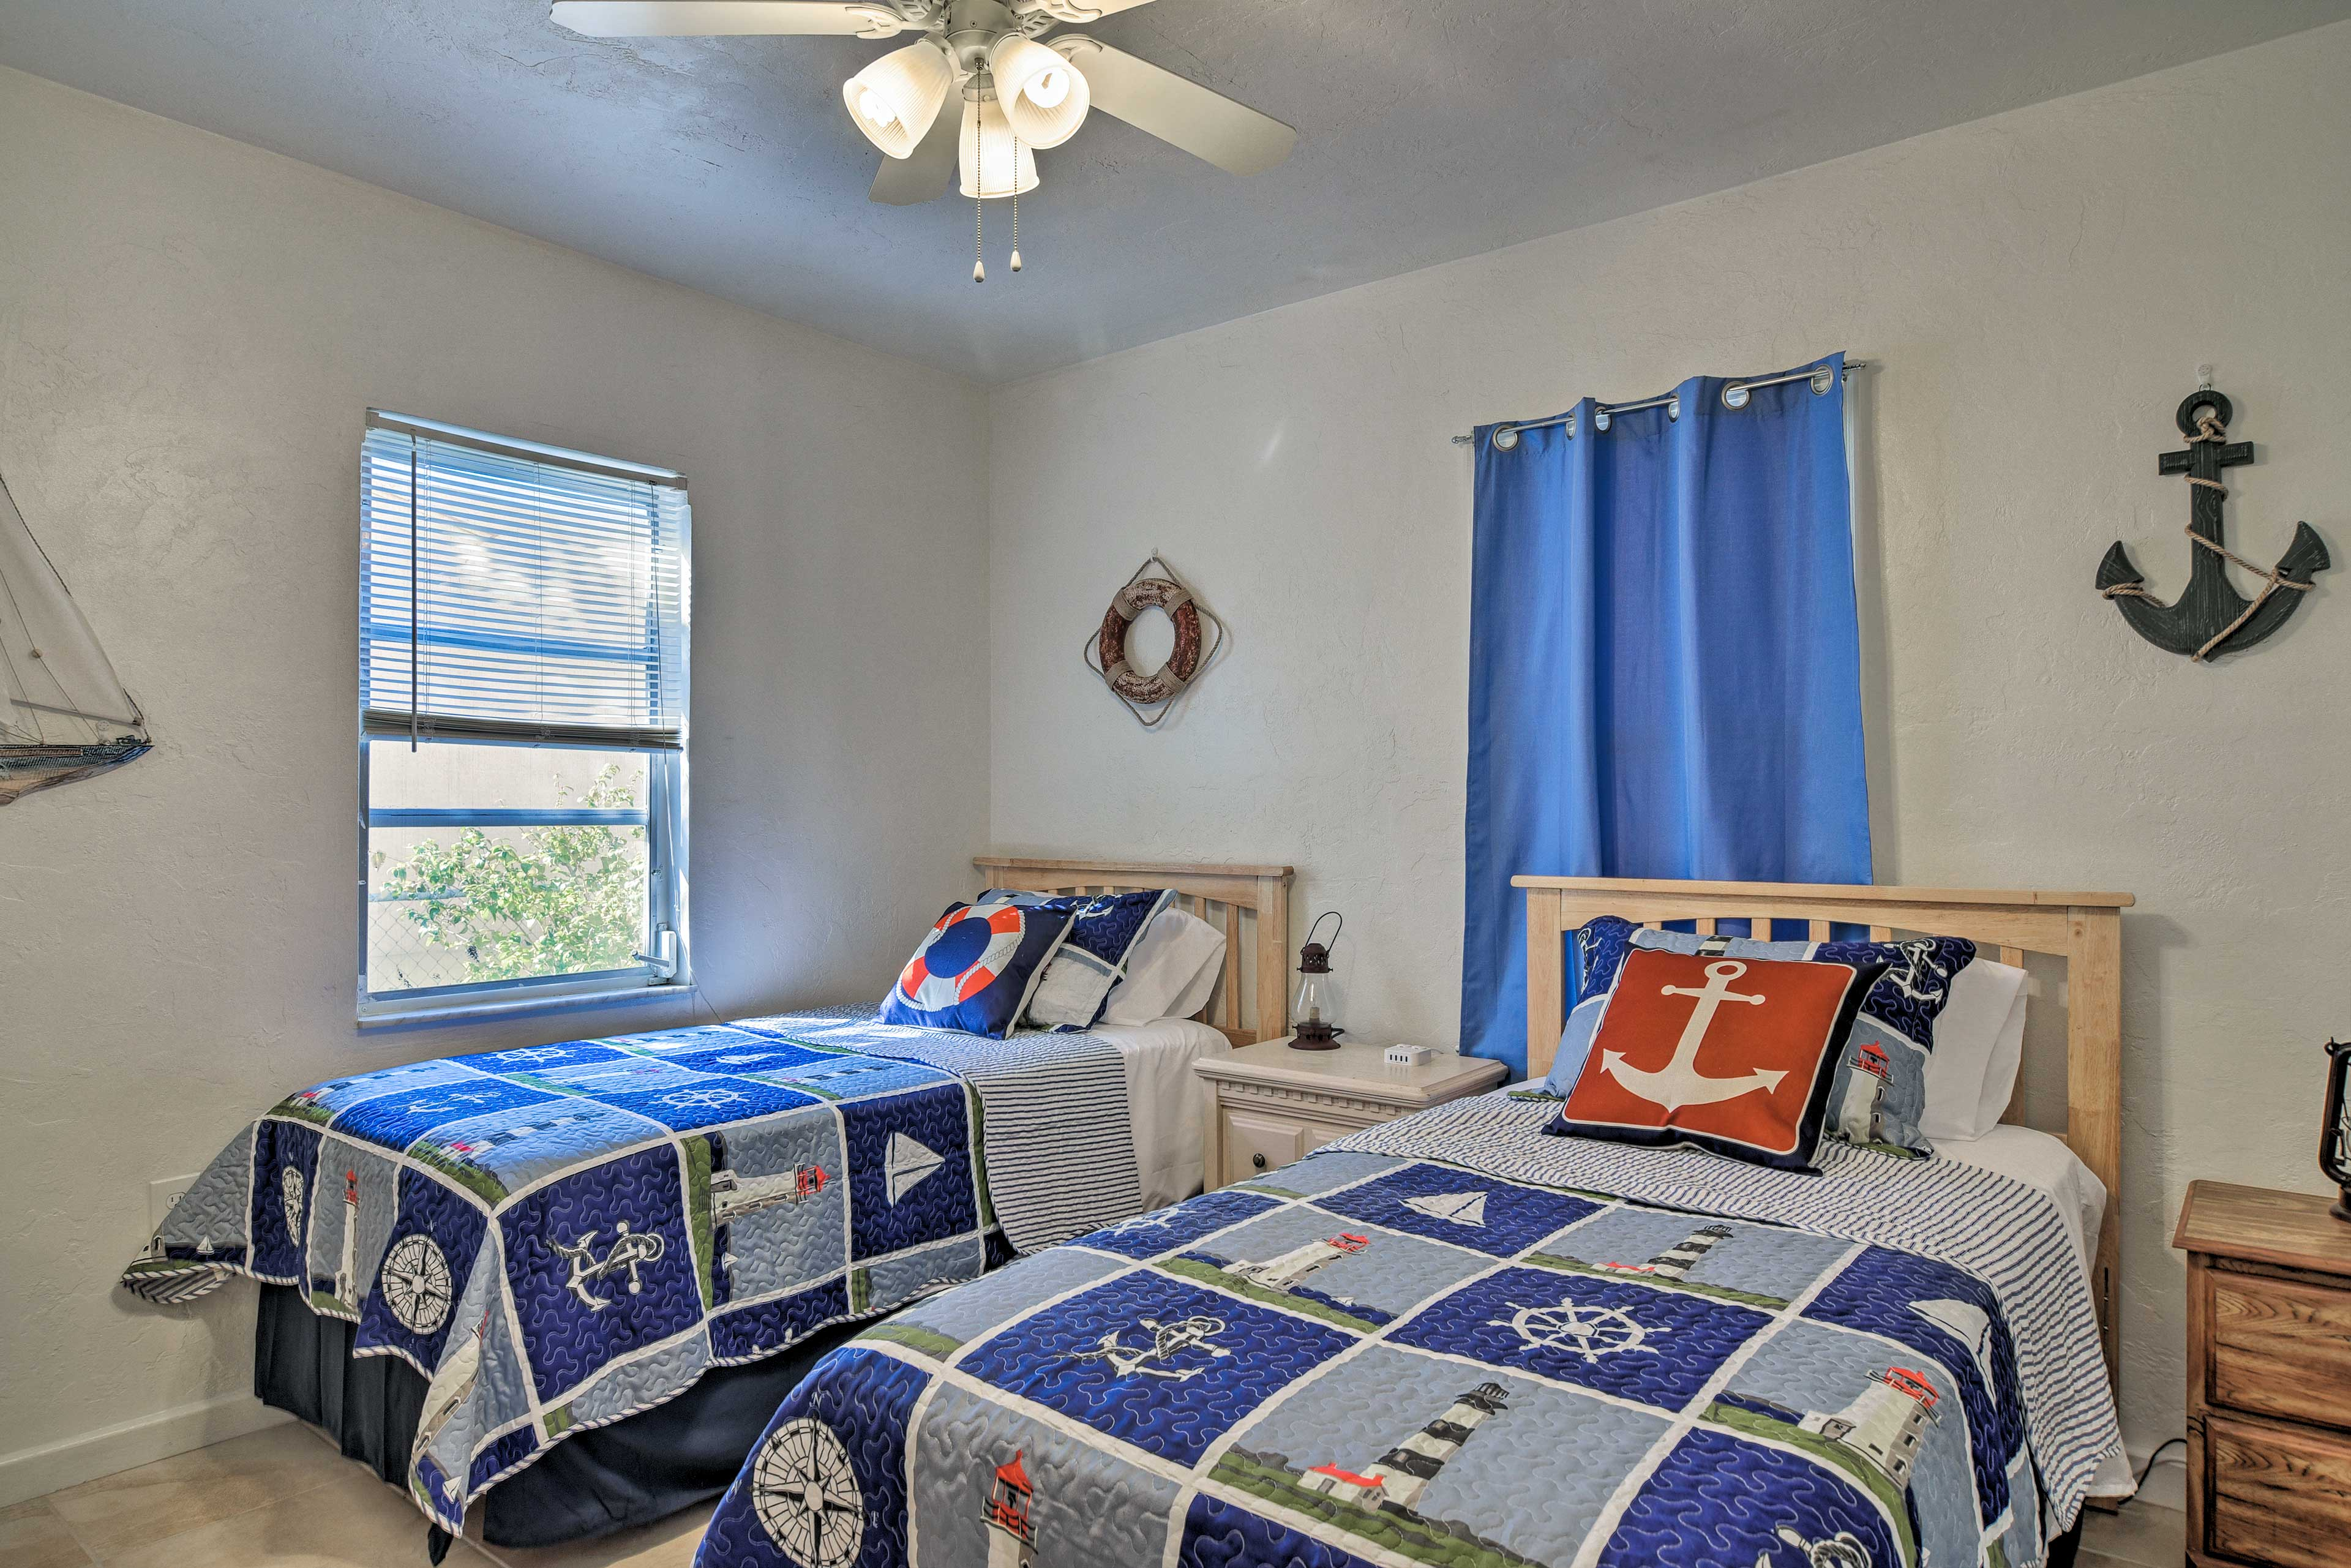 The 2nd bedroom features 2 twin beds, great for kids to make their home!